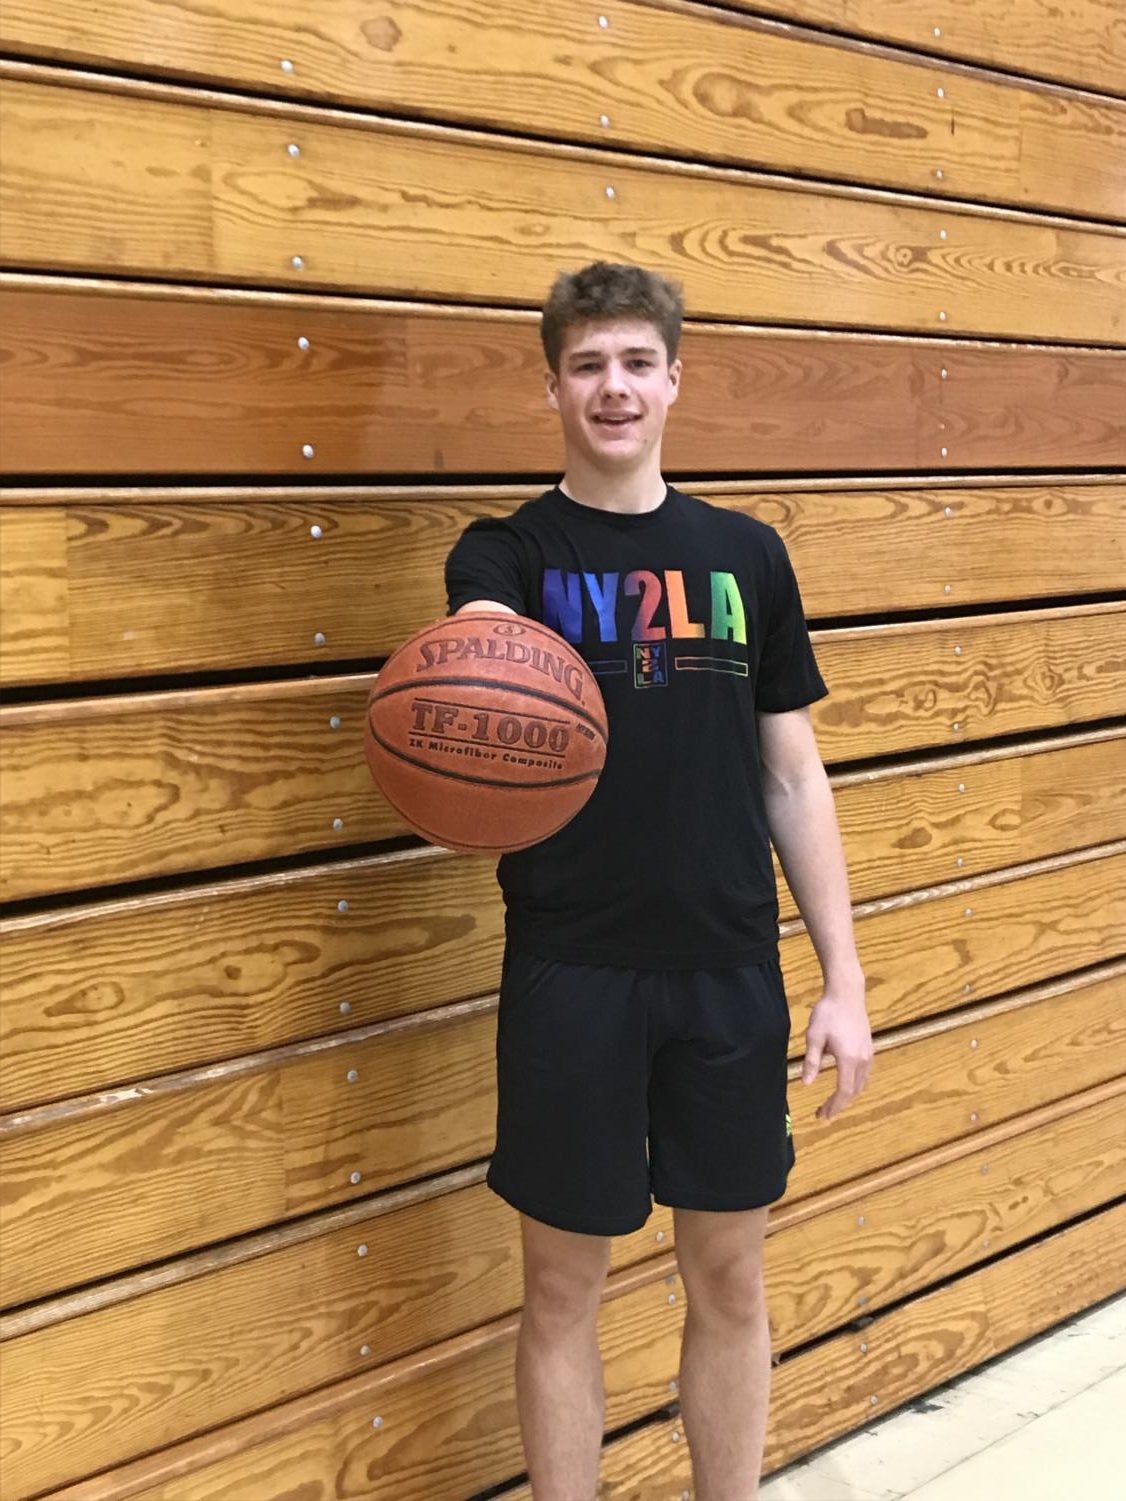 """""""Last season, we went to state but came up short. This year, it would be a dream come true if we could get back and bring home a championship this time around,"""" senior basketball captain Max Klesmit said."""